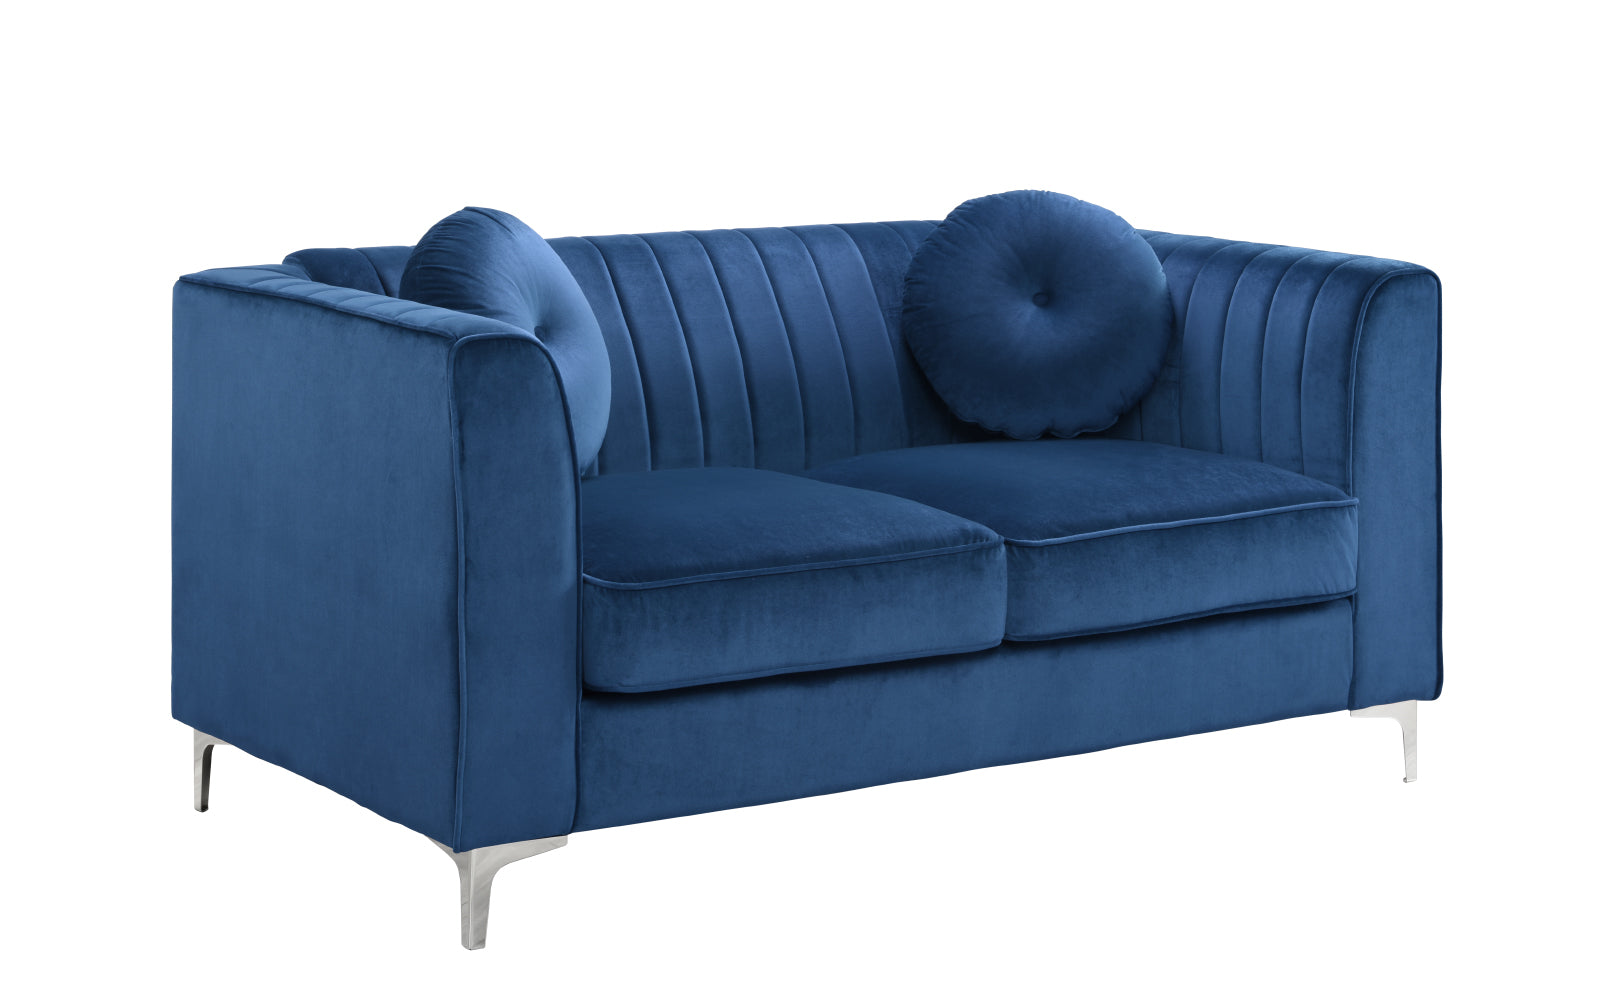 Outstanding Ciara Classic Old Hollywood Boudoir Velvet Loveseat Squirreltailoven Fun Painted Chair Ideas Images Squirreltailovenorg